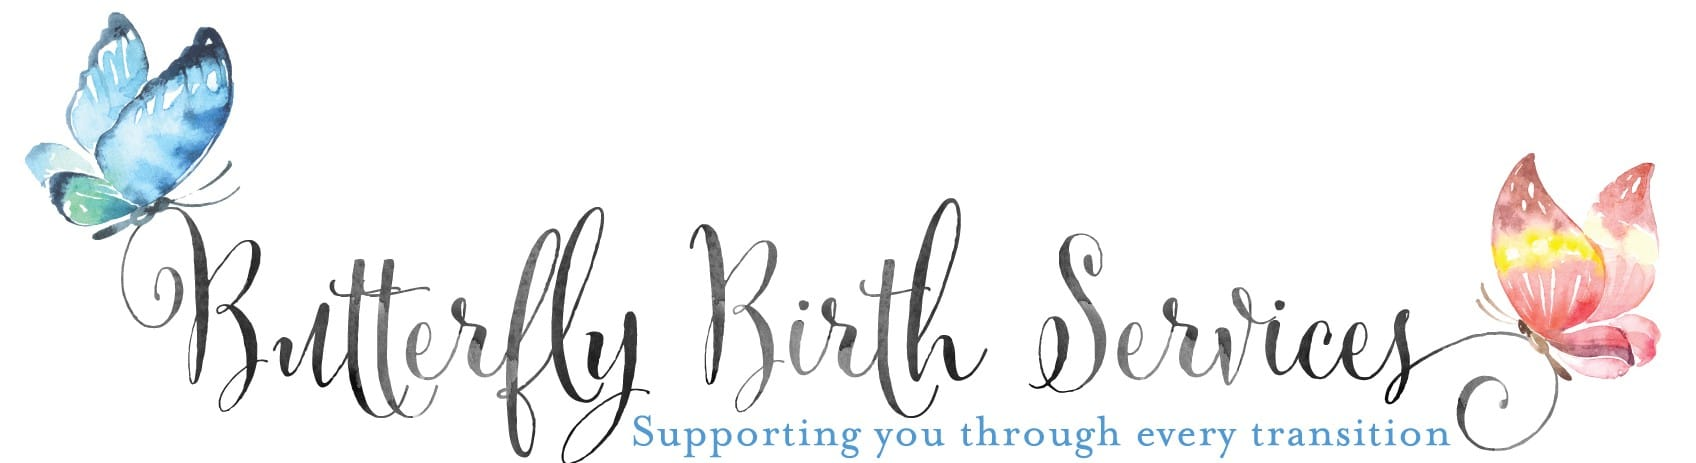 Butterfly Doula Birth Services - Supporting You Through Every Transition